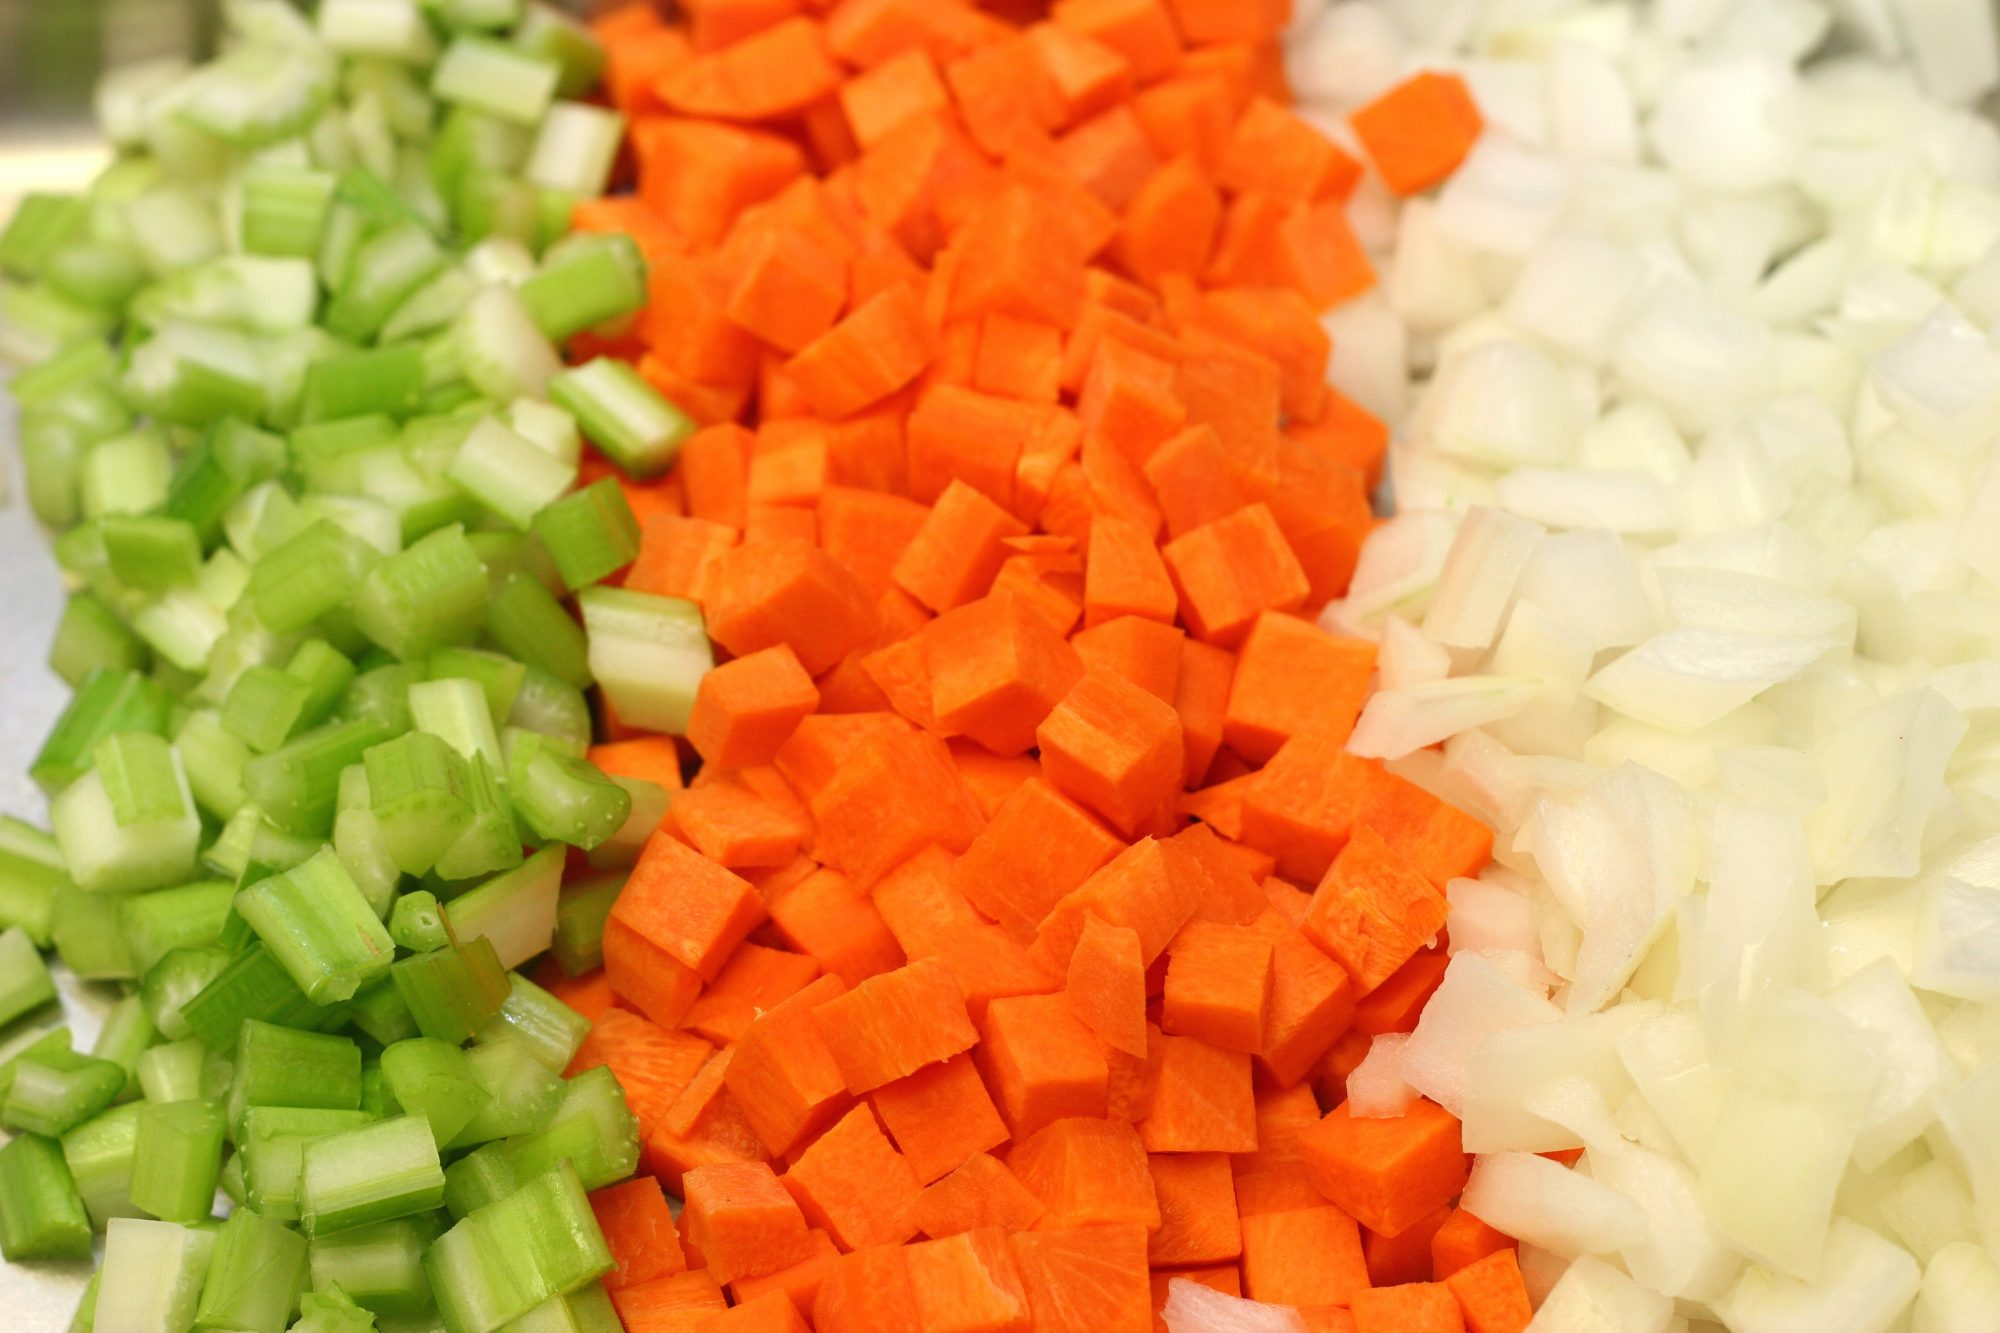 Celery, Carrots and Onions